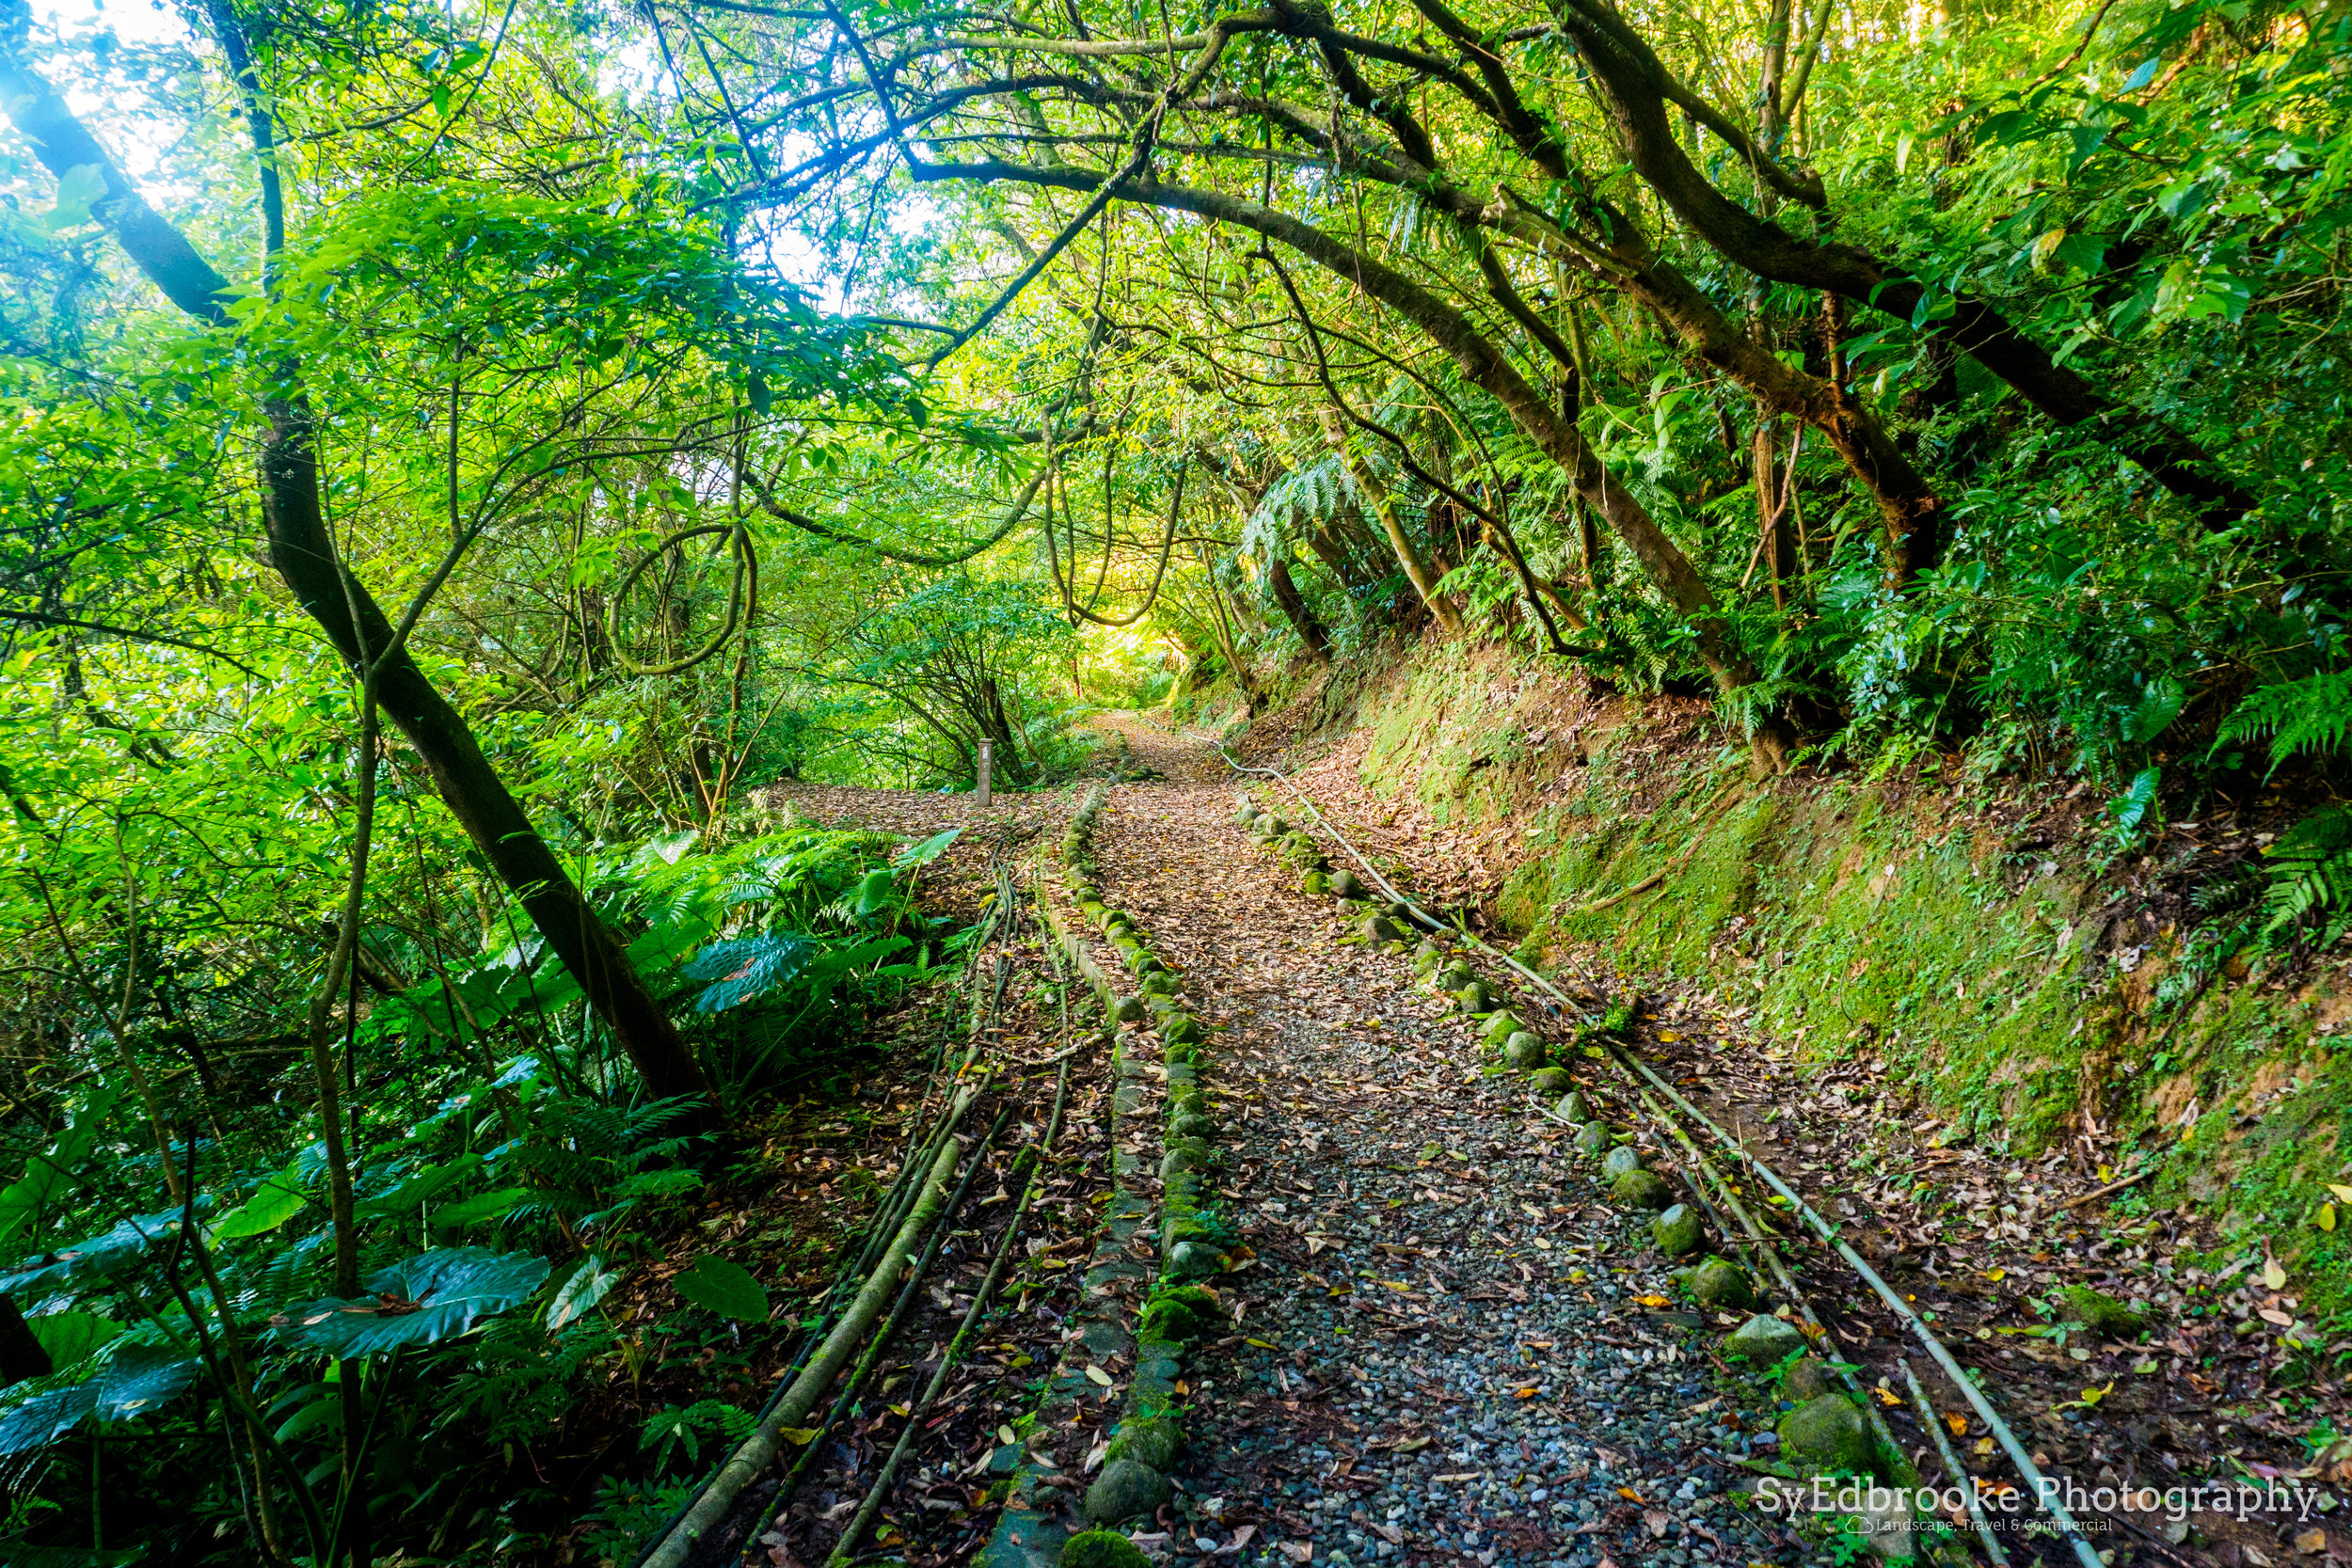 The old railway track. f7.1, ISO 1600, 1/6, 24mm